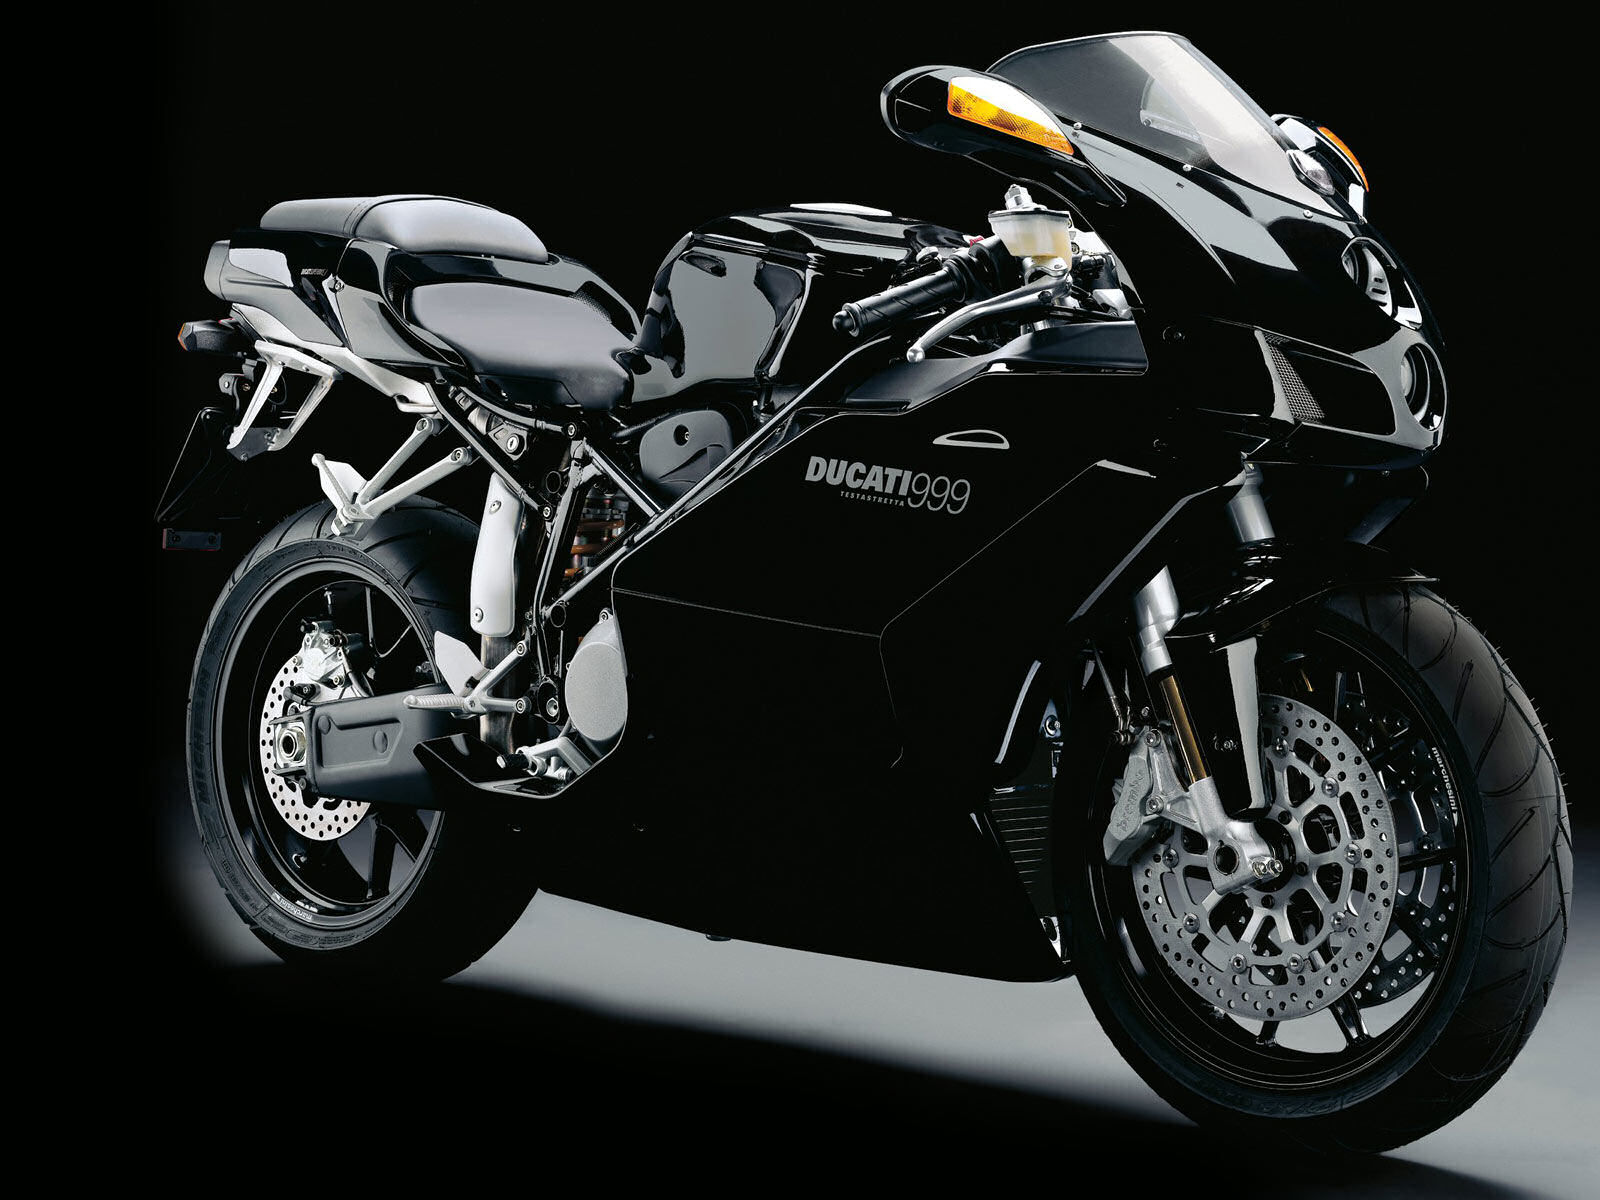 Motor Cycle Wallpaper HD: Latest Have Bikes Model HD Wallpapers